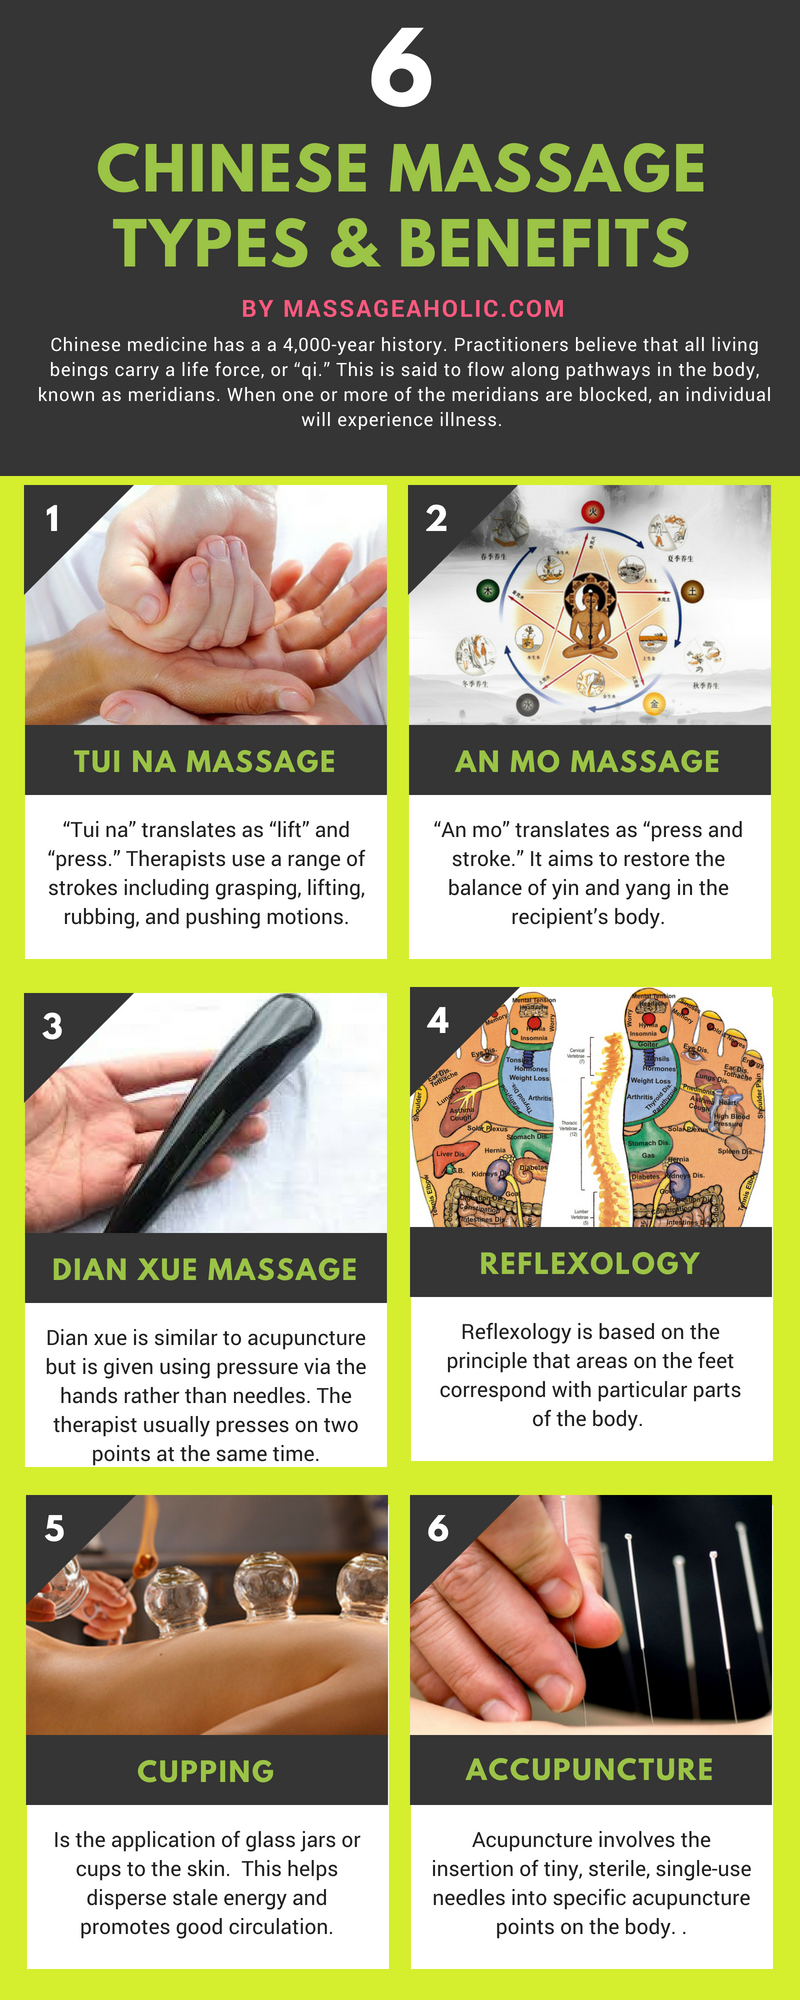 Chinese massage types and benefits (1)